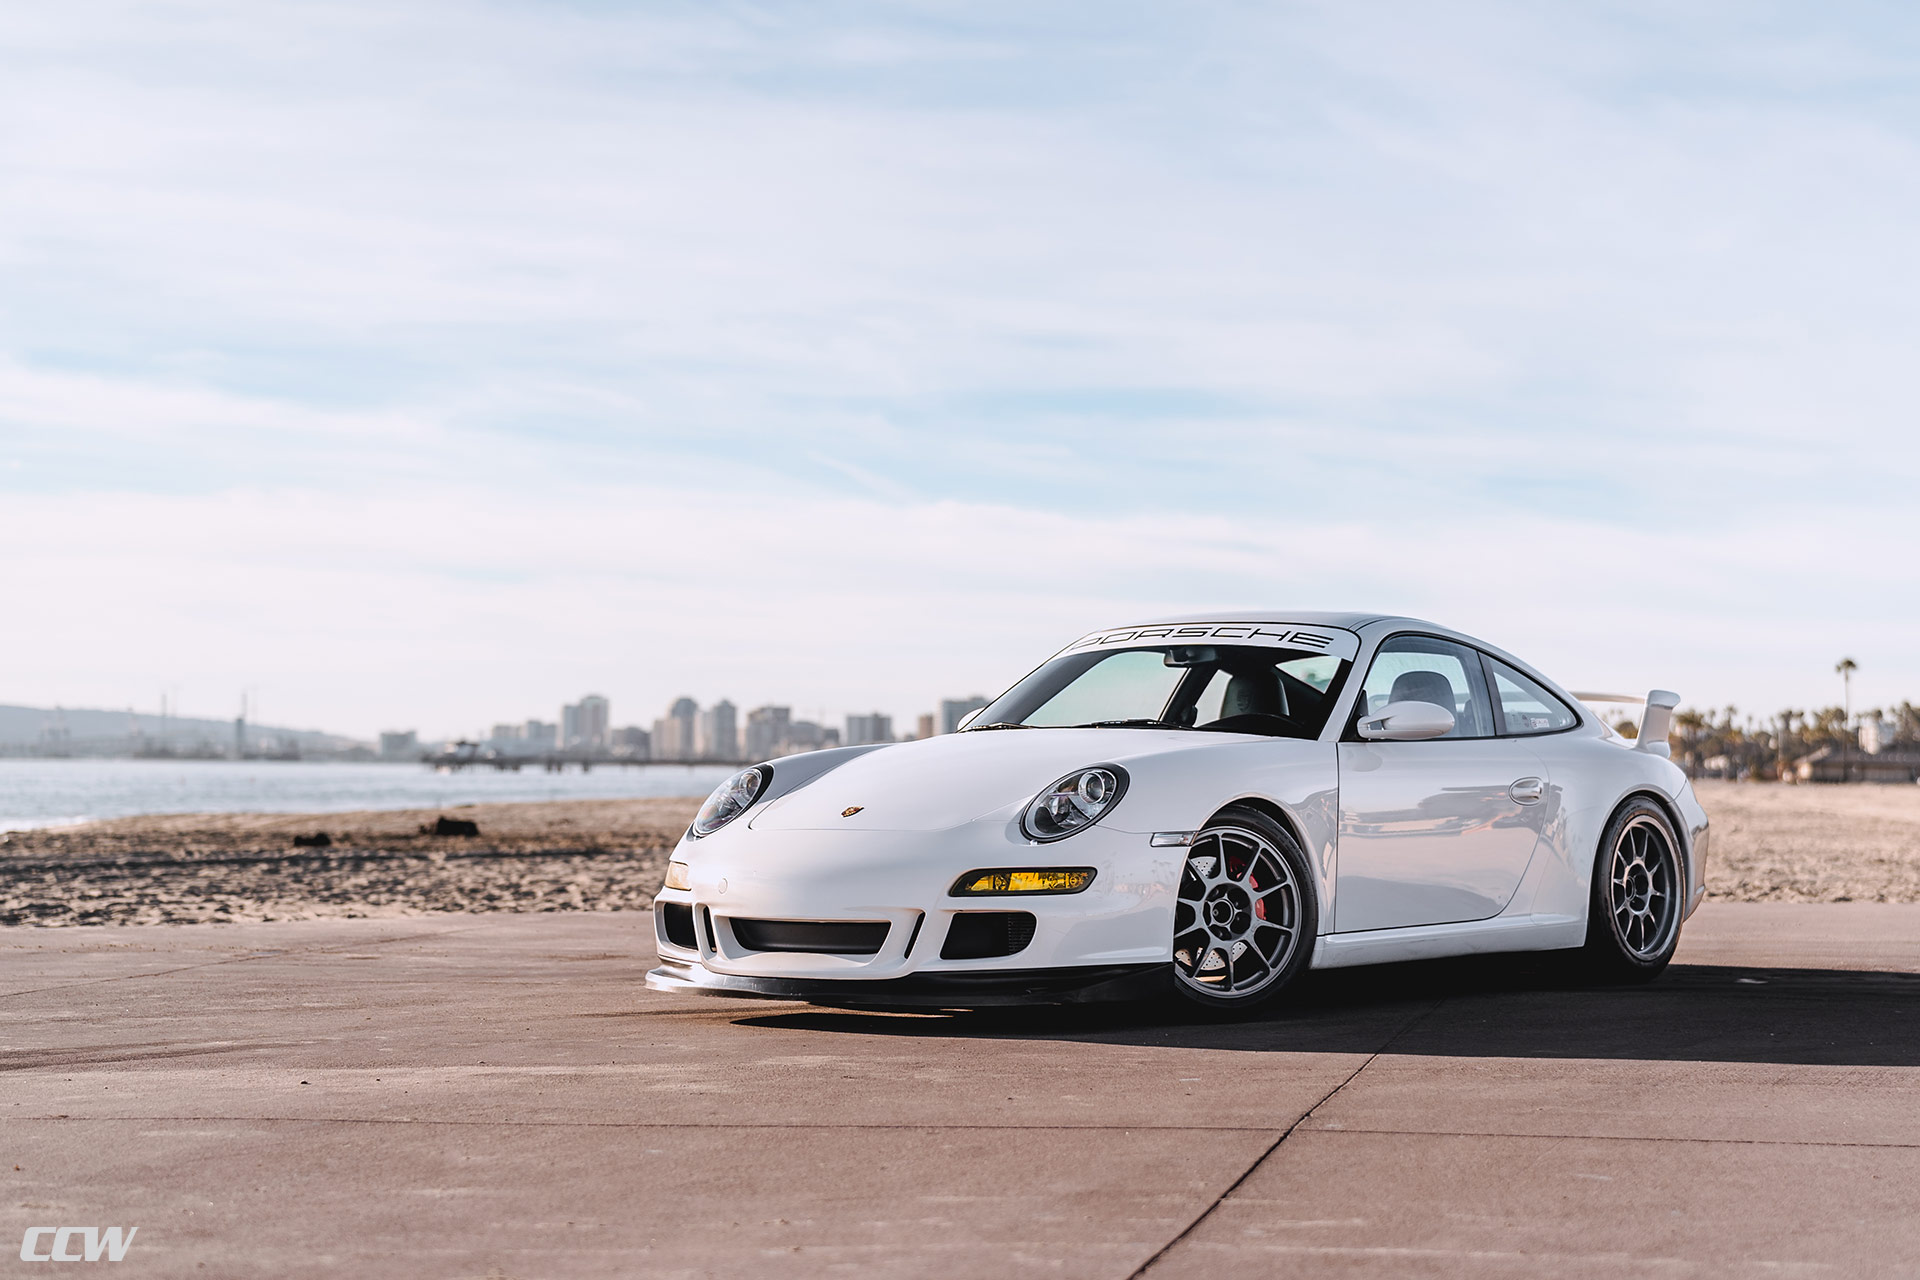 White Porsche 997 Carrera S - CCW C10 Wheels in Custom Gray